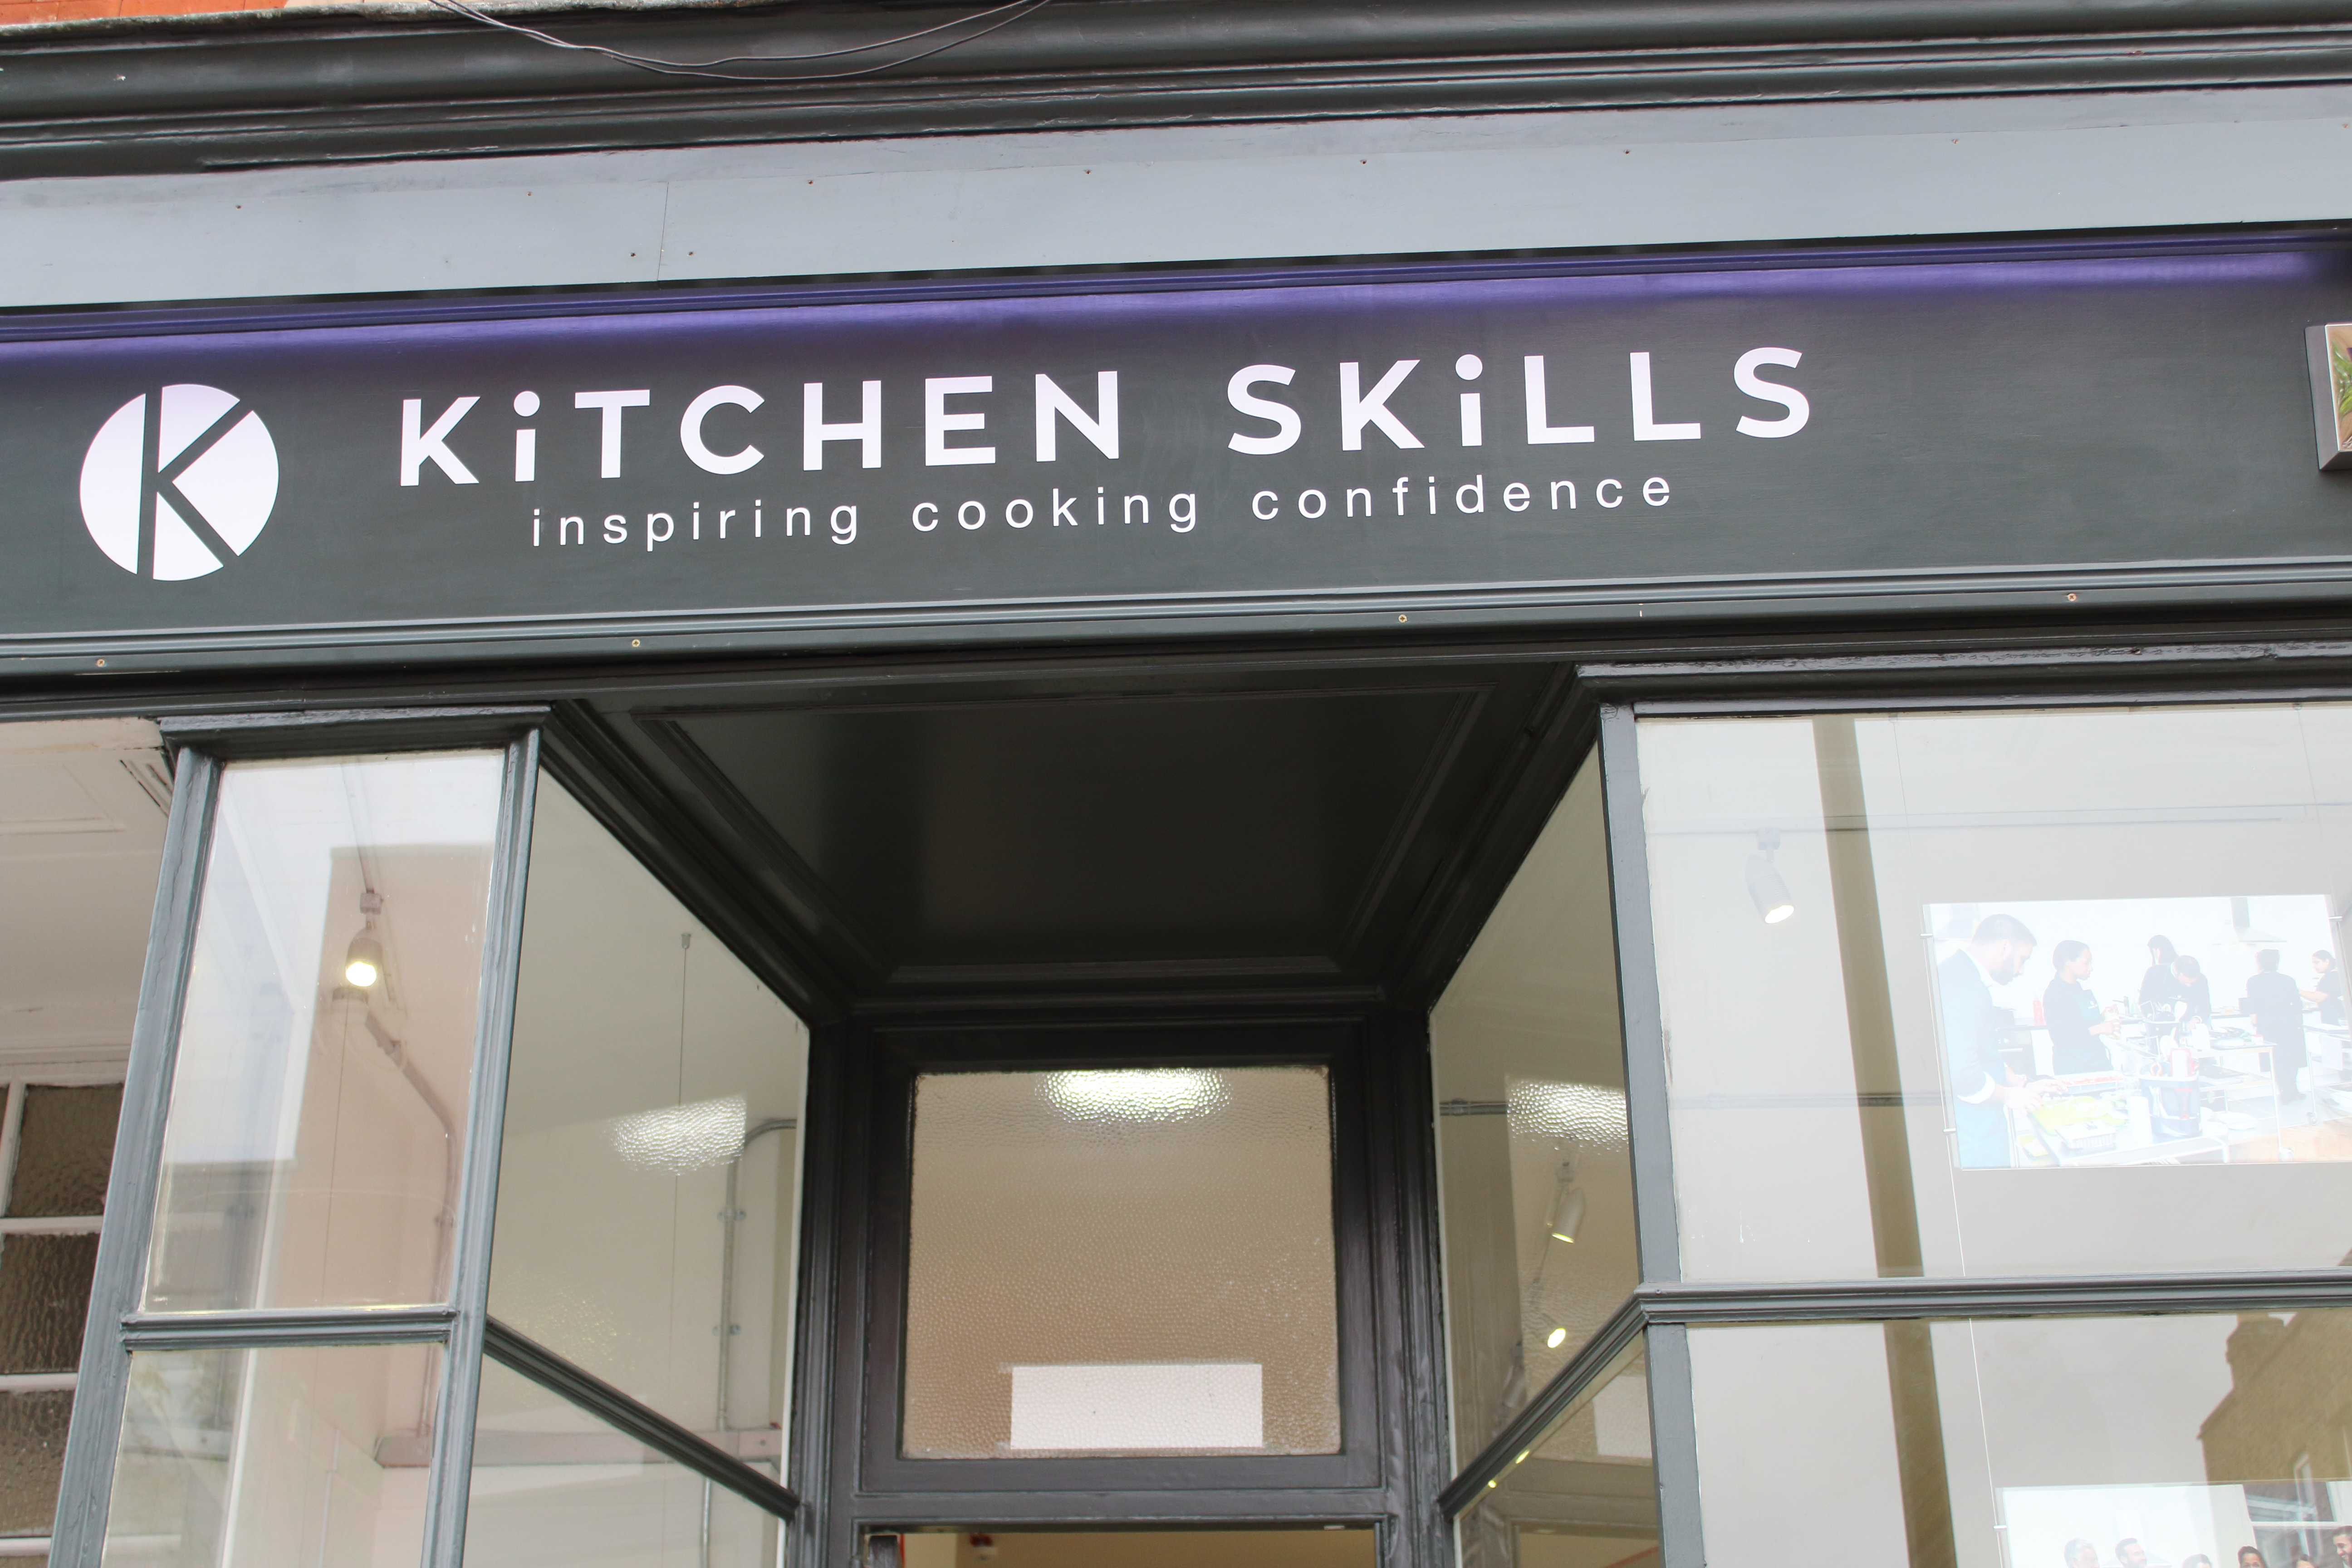 Kitchen Skills undefined classes in London